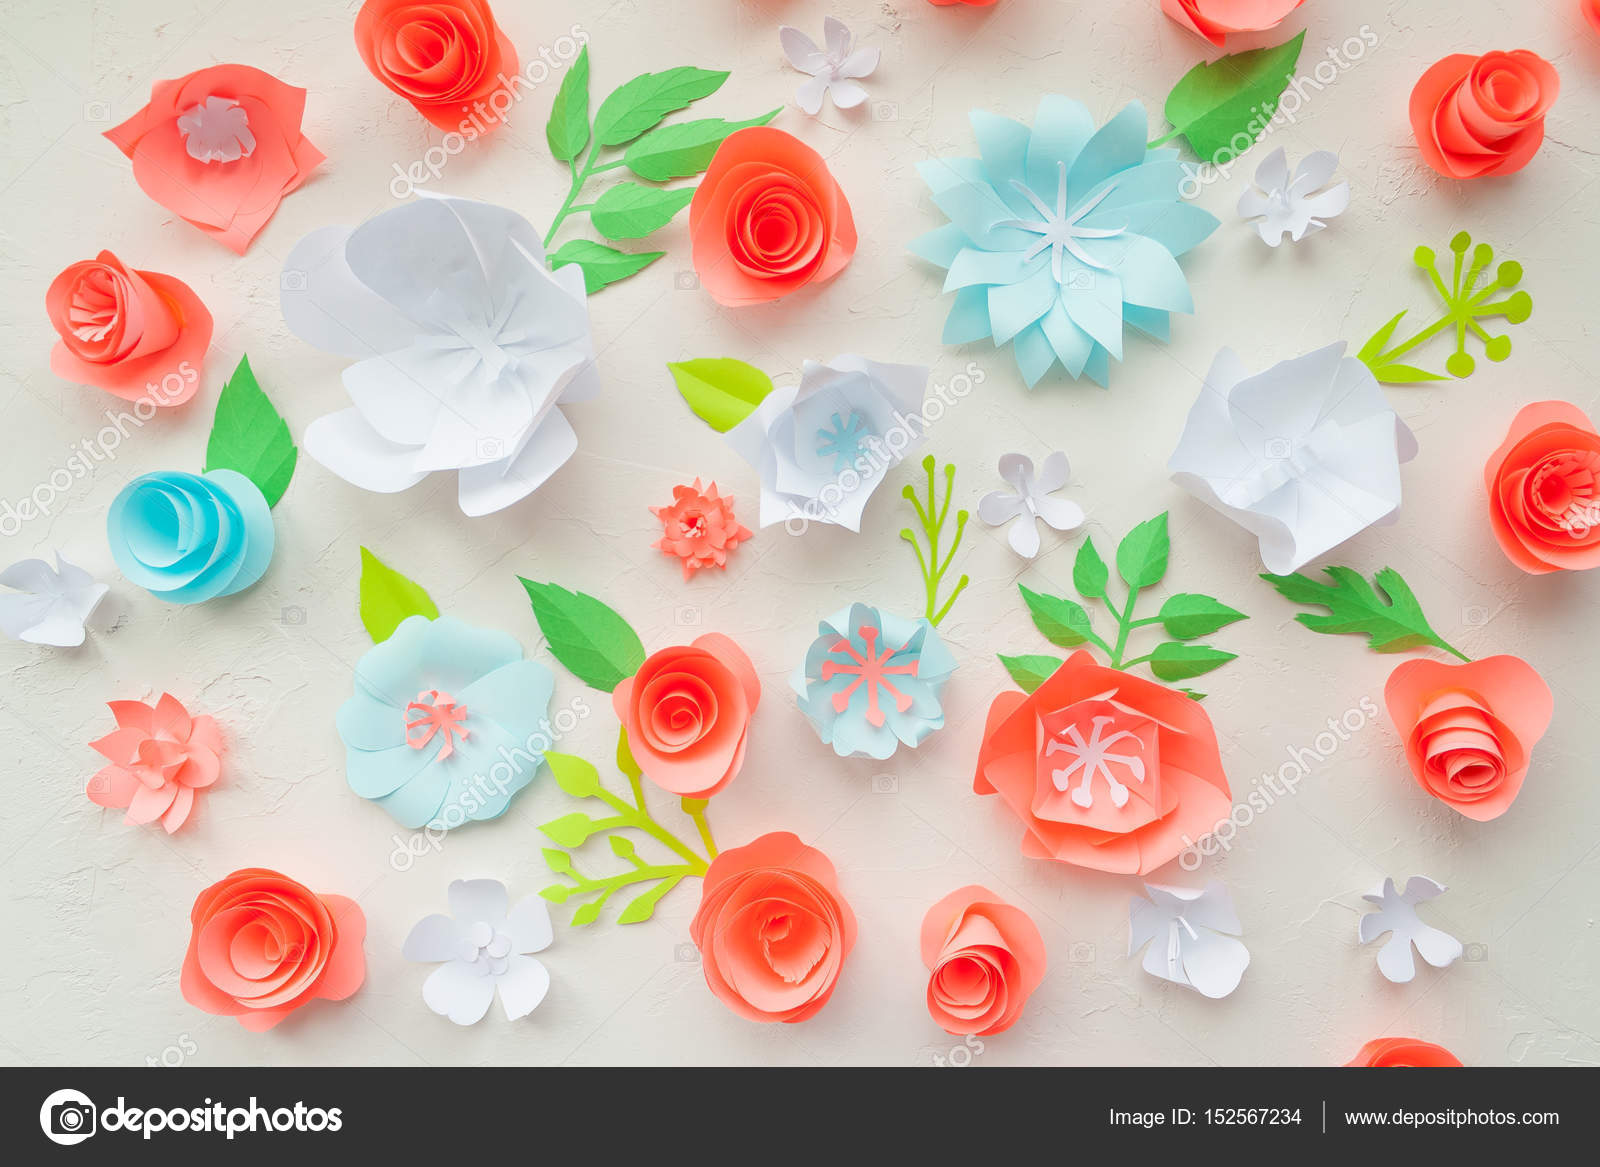 Color Paper Flowers On The White Stucco Flat Lay Nature Concept